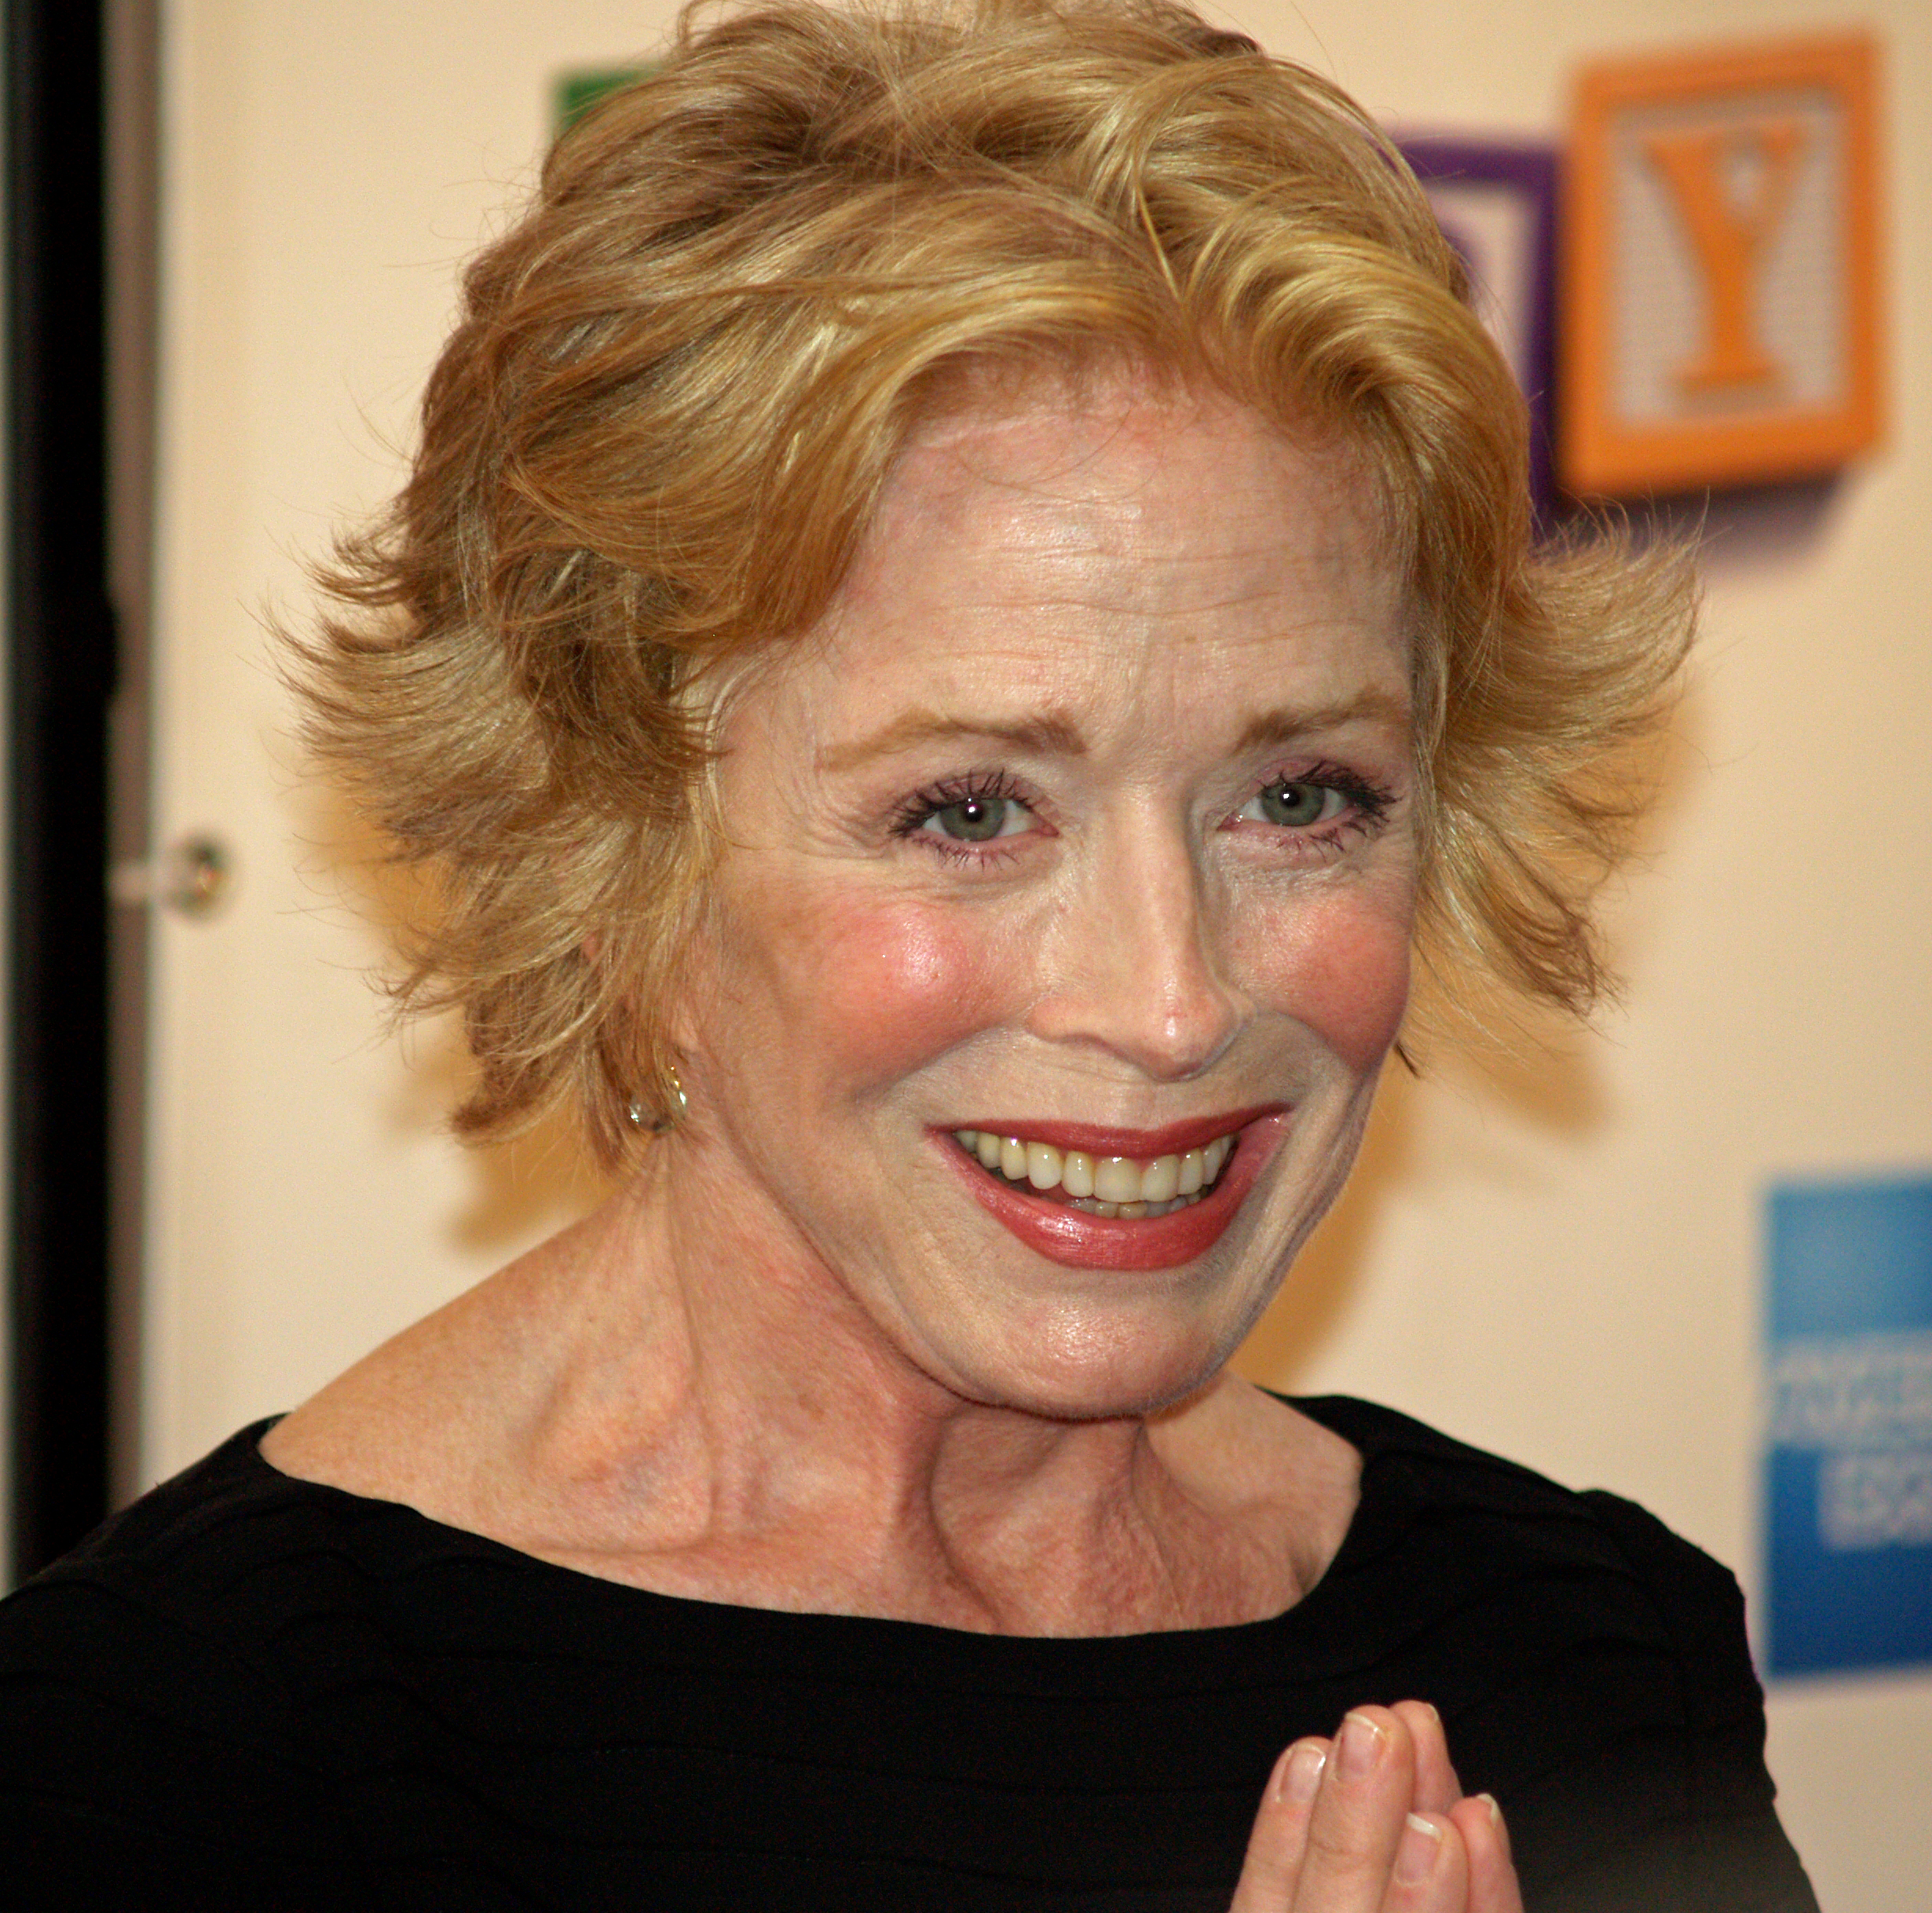 holland taylor daughterholland taylor young, holland taylor age, holland taylor imdb, holland taylor husband, holland taylor insta, holland taylor sarah paulson, holland taylor instagram, holland taylor wiki, holland taylor astrotheme, holland taylor, holland taylor net worth, holland taylor twitter, holland taylor and sarah paulson relationship, holland taylor feet, holland taylor bio, holland taylor 2015, holland taylor on charlie sheen, holland taylor legally blonde, holland taylor daughter, holland taylor married